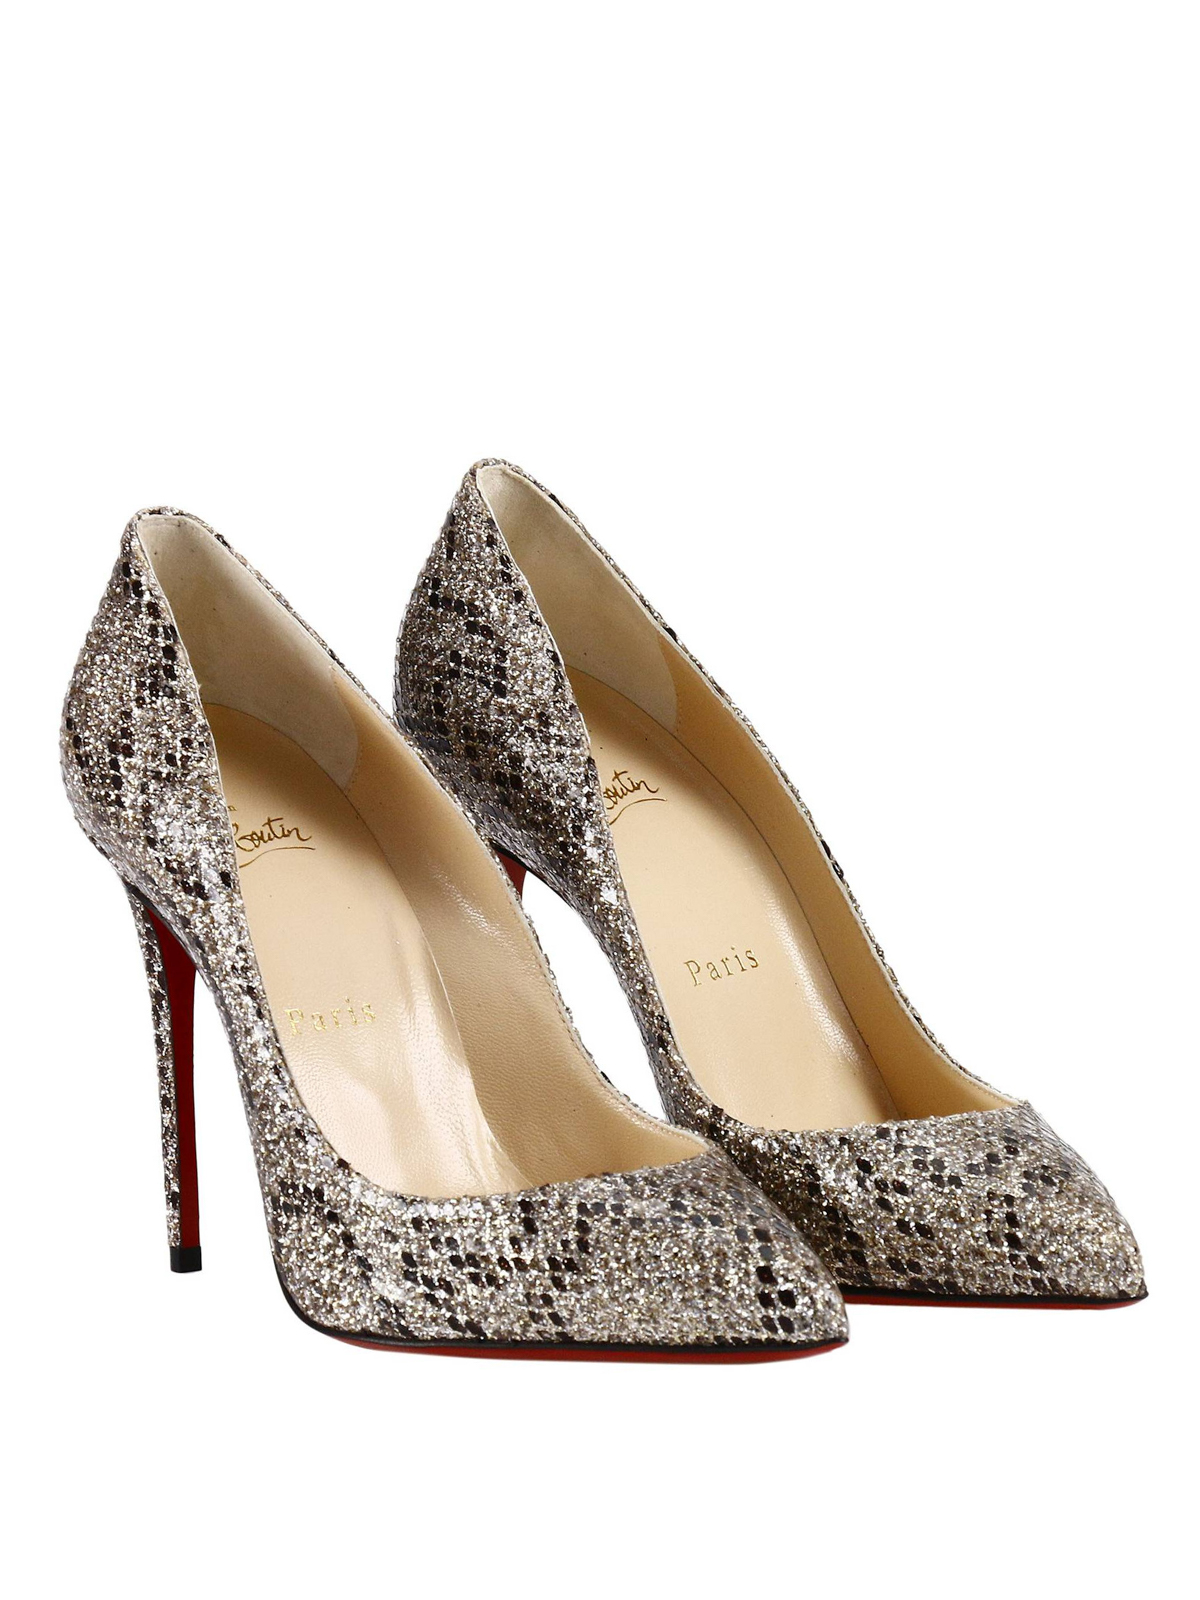 on sale 332dd c48fe Christian Louboutin - Pigalle Follies ayers leather pumps ...